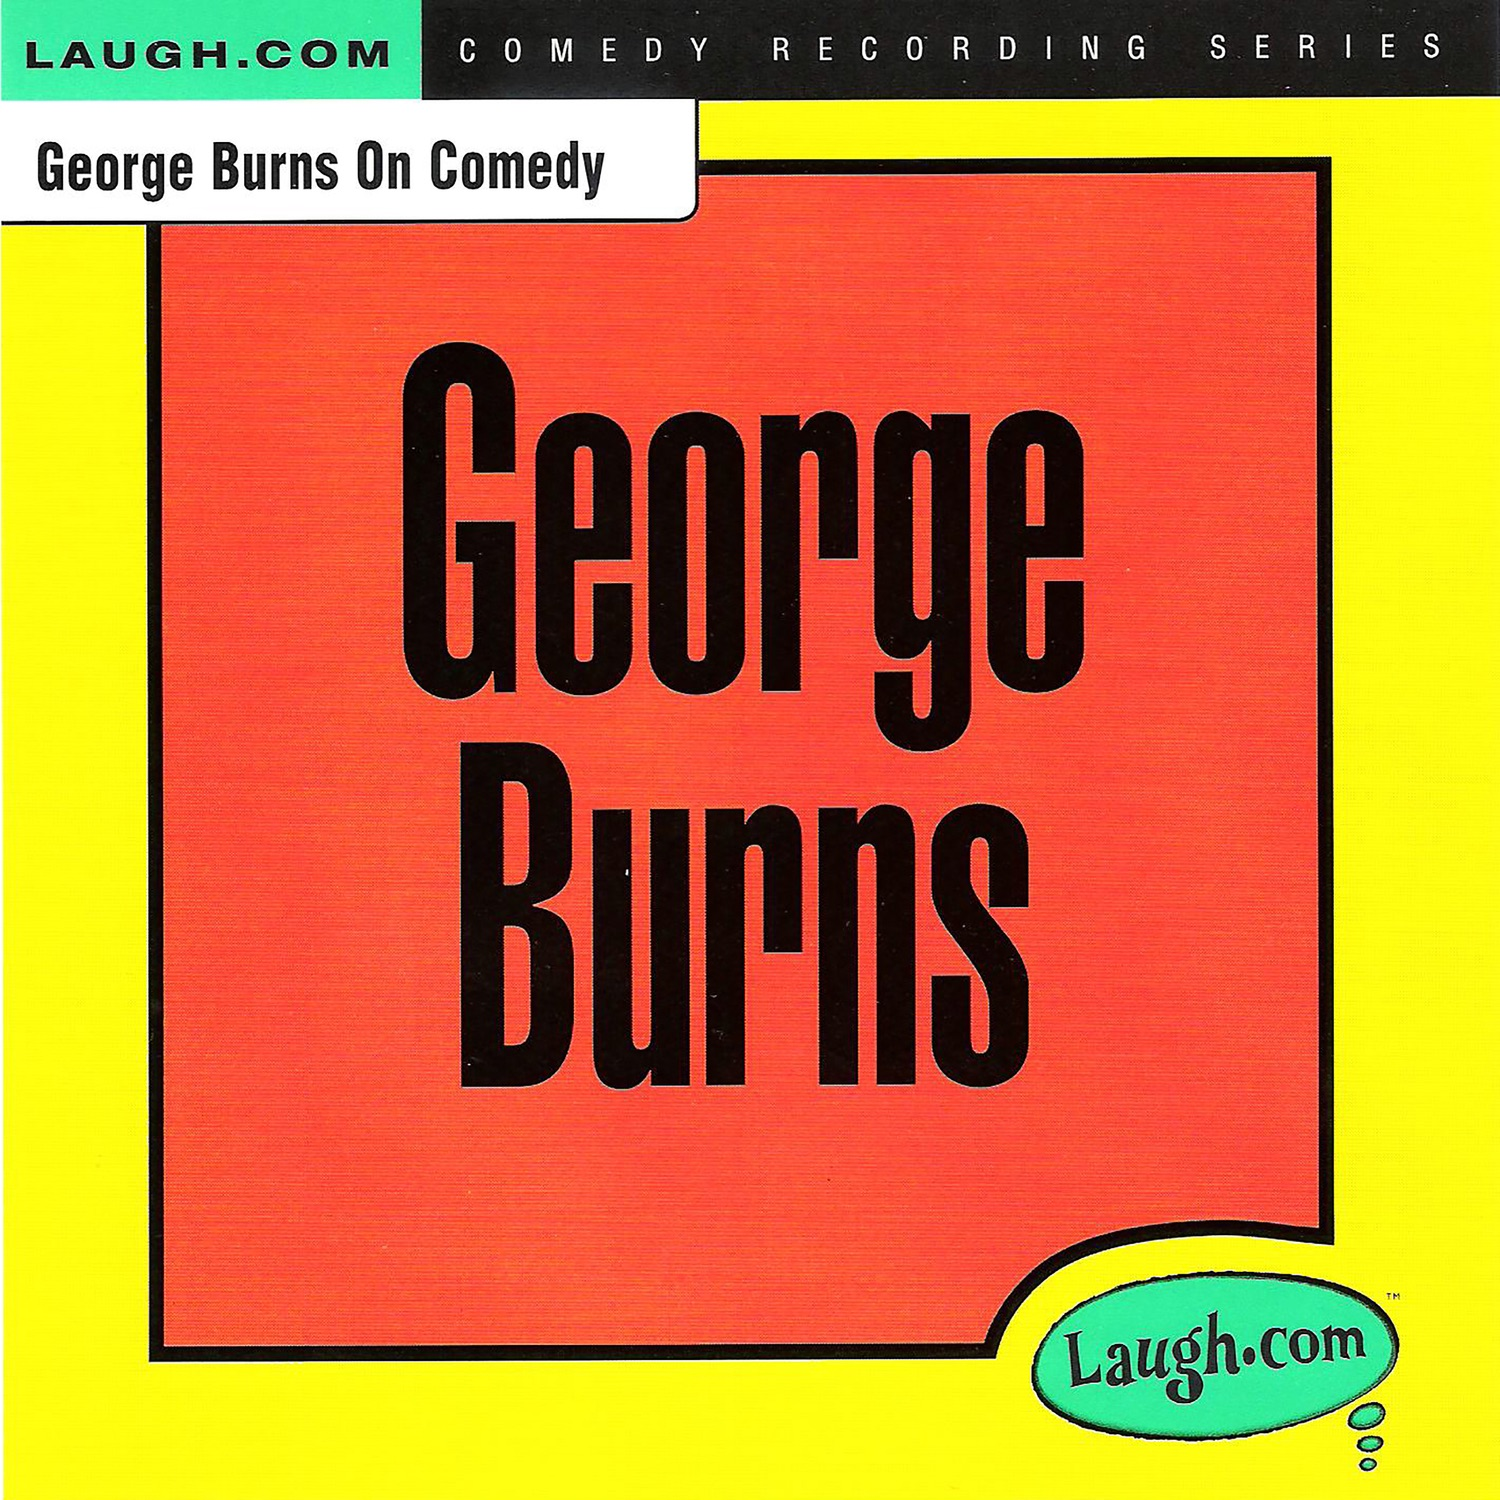 George Burns on Comedy (feat. Larry Wilde)